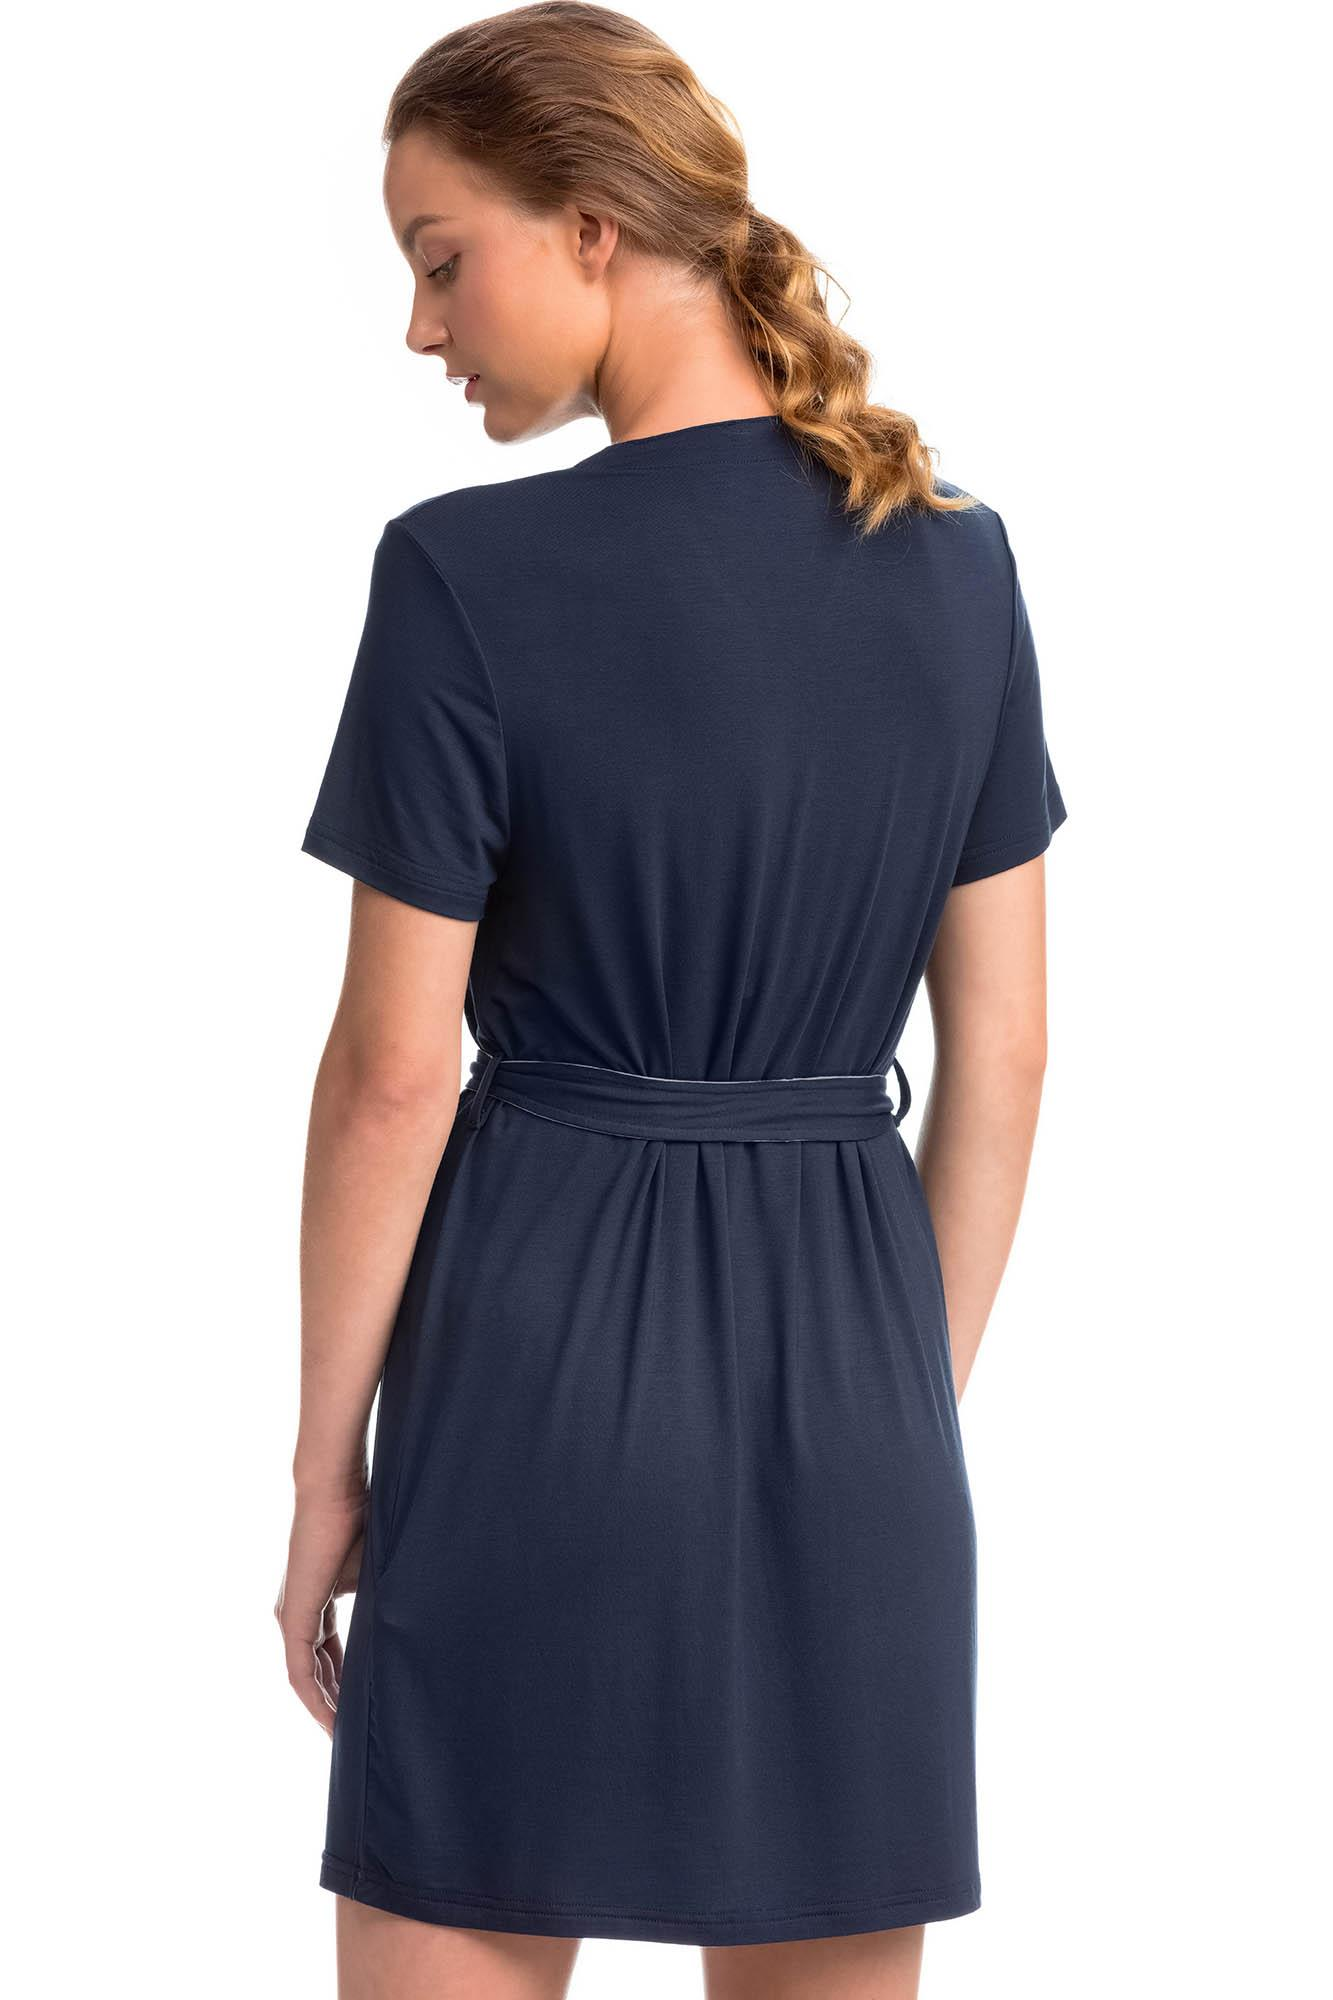 Dress with Tie Waist Belt